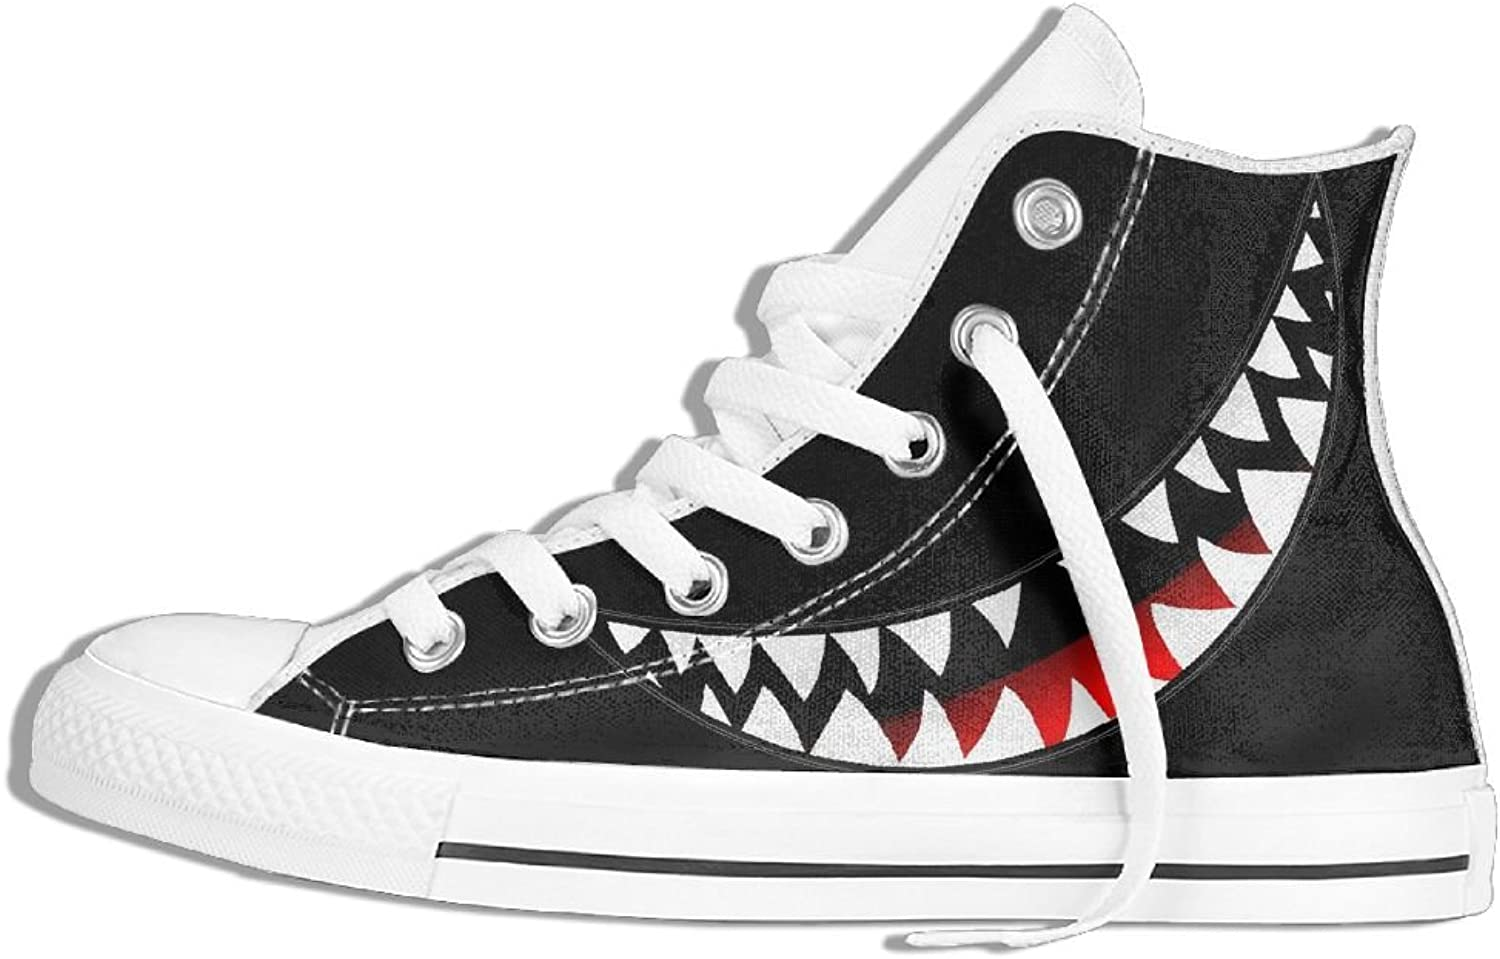 Unisex High-Top Canvas Sneakers Sharp Shark Round Toe Anti Skid Running Trainers shoes